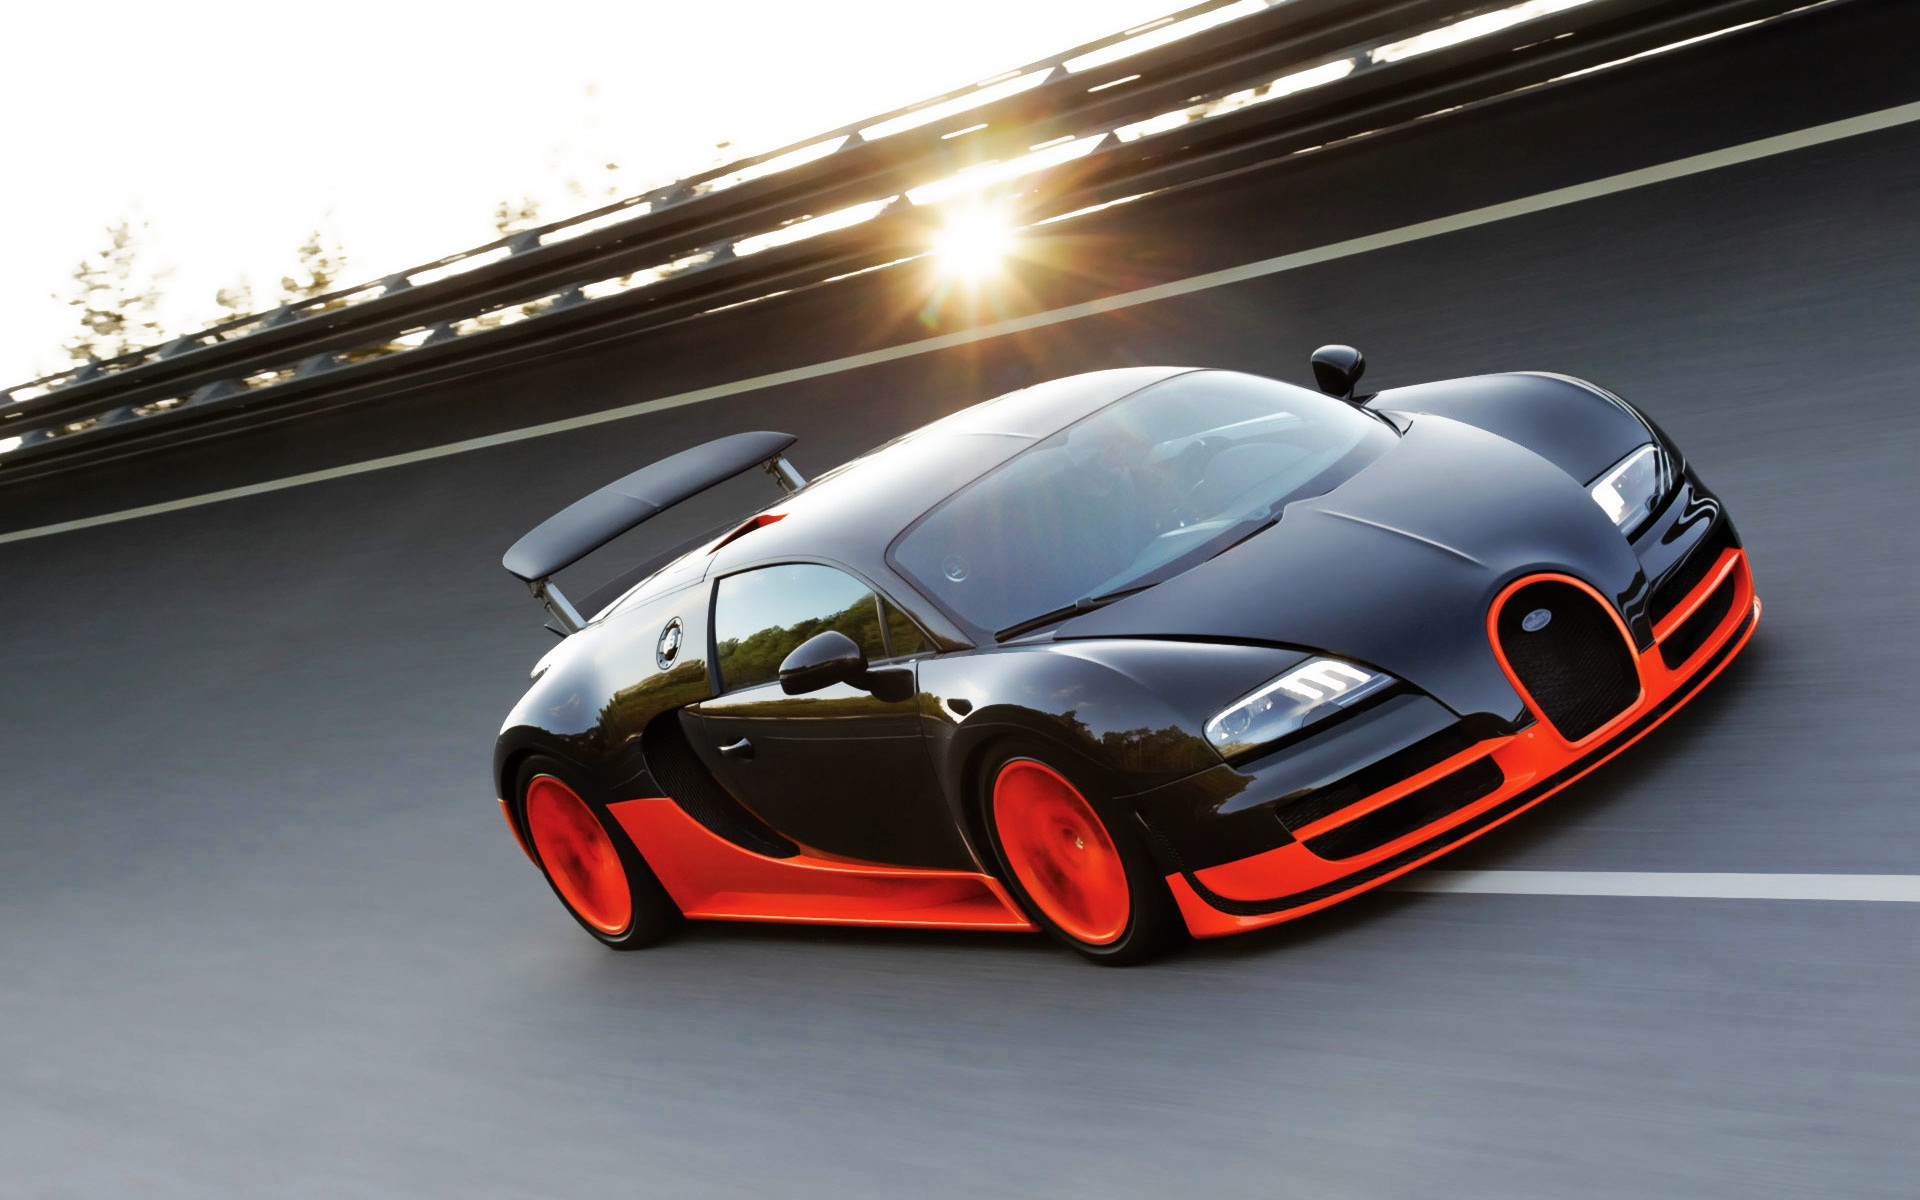 Bugatti Veyron SS 2010 Wallpapers HD Wallpapers 1920x1200